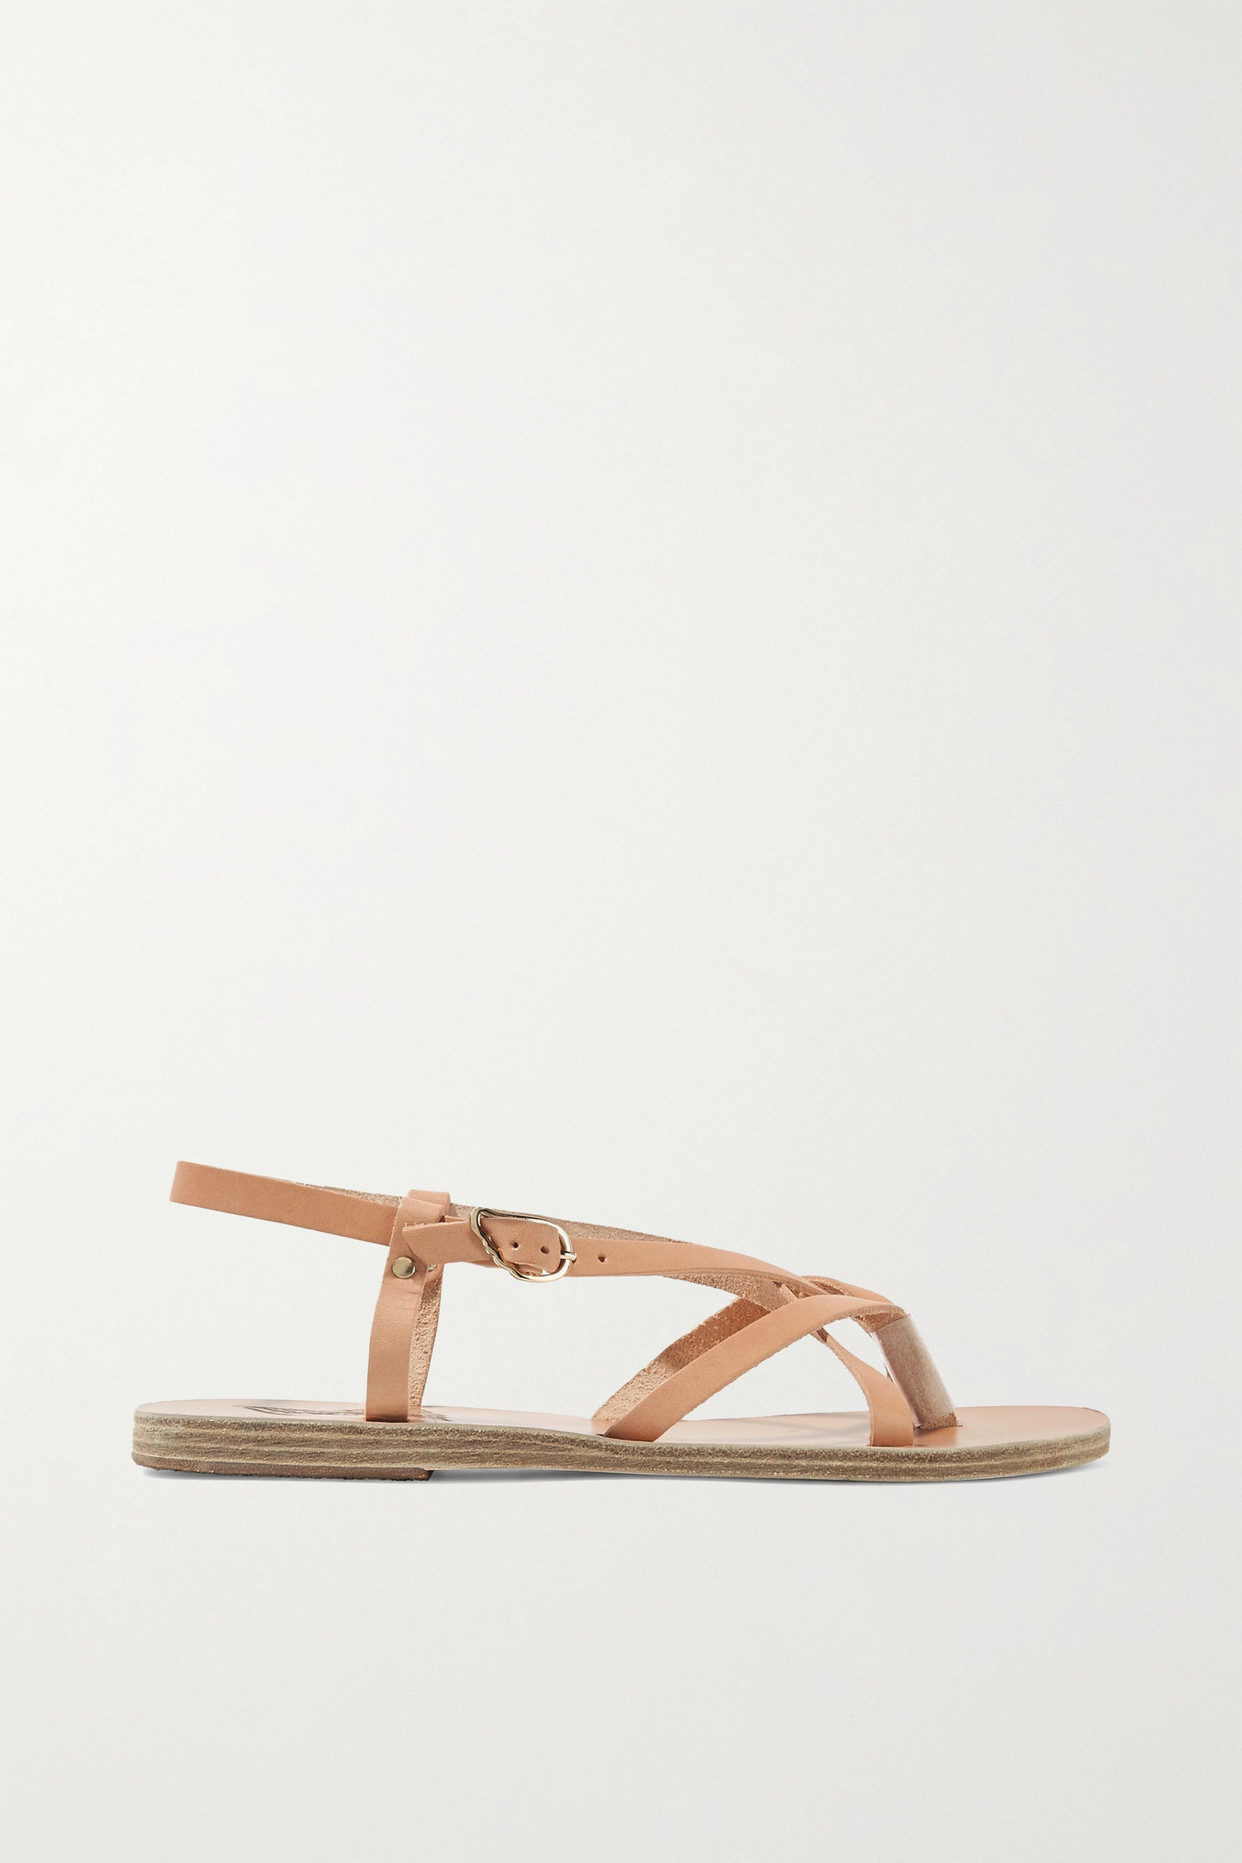 ANCIENT GREEK SANDALS - Semele 皮革凉鞋 - 中性色 - IT38